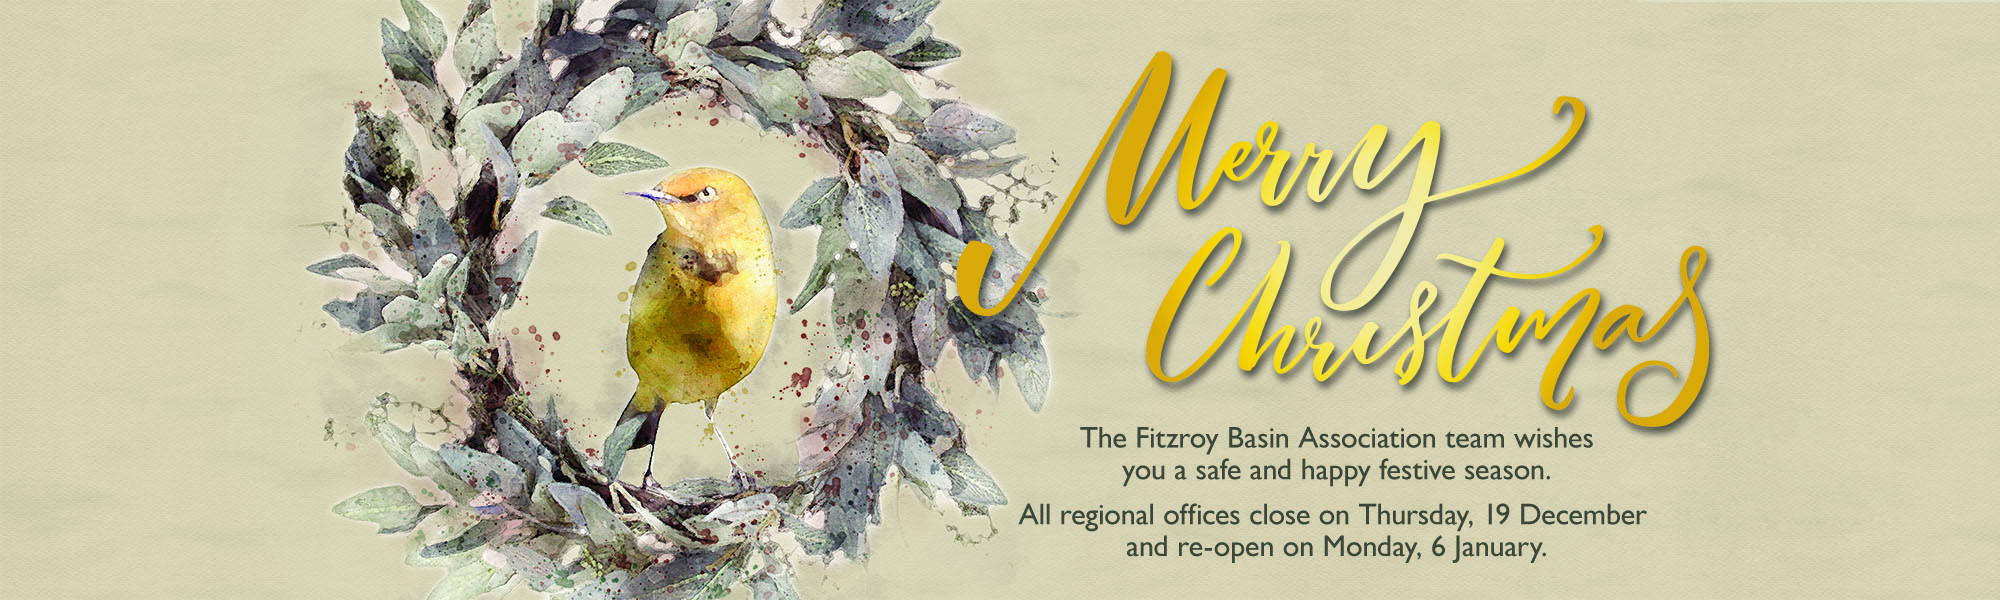 Capricorn Yellow Chat_Christmas_WATERCOLOURED_Web Banner 2000x600